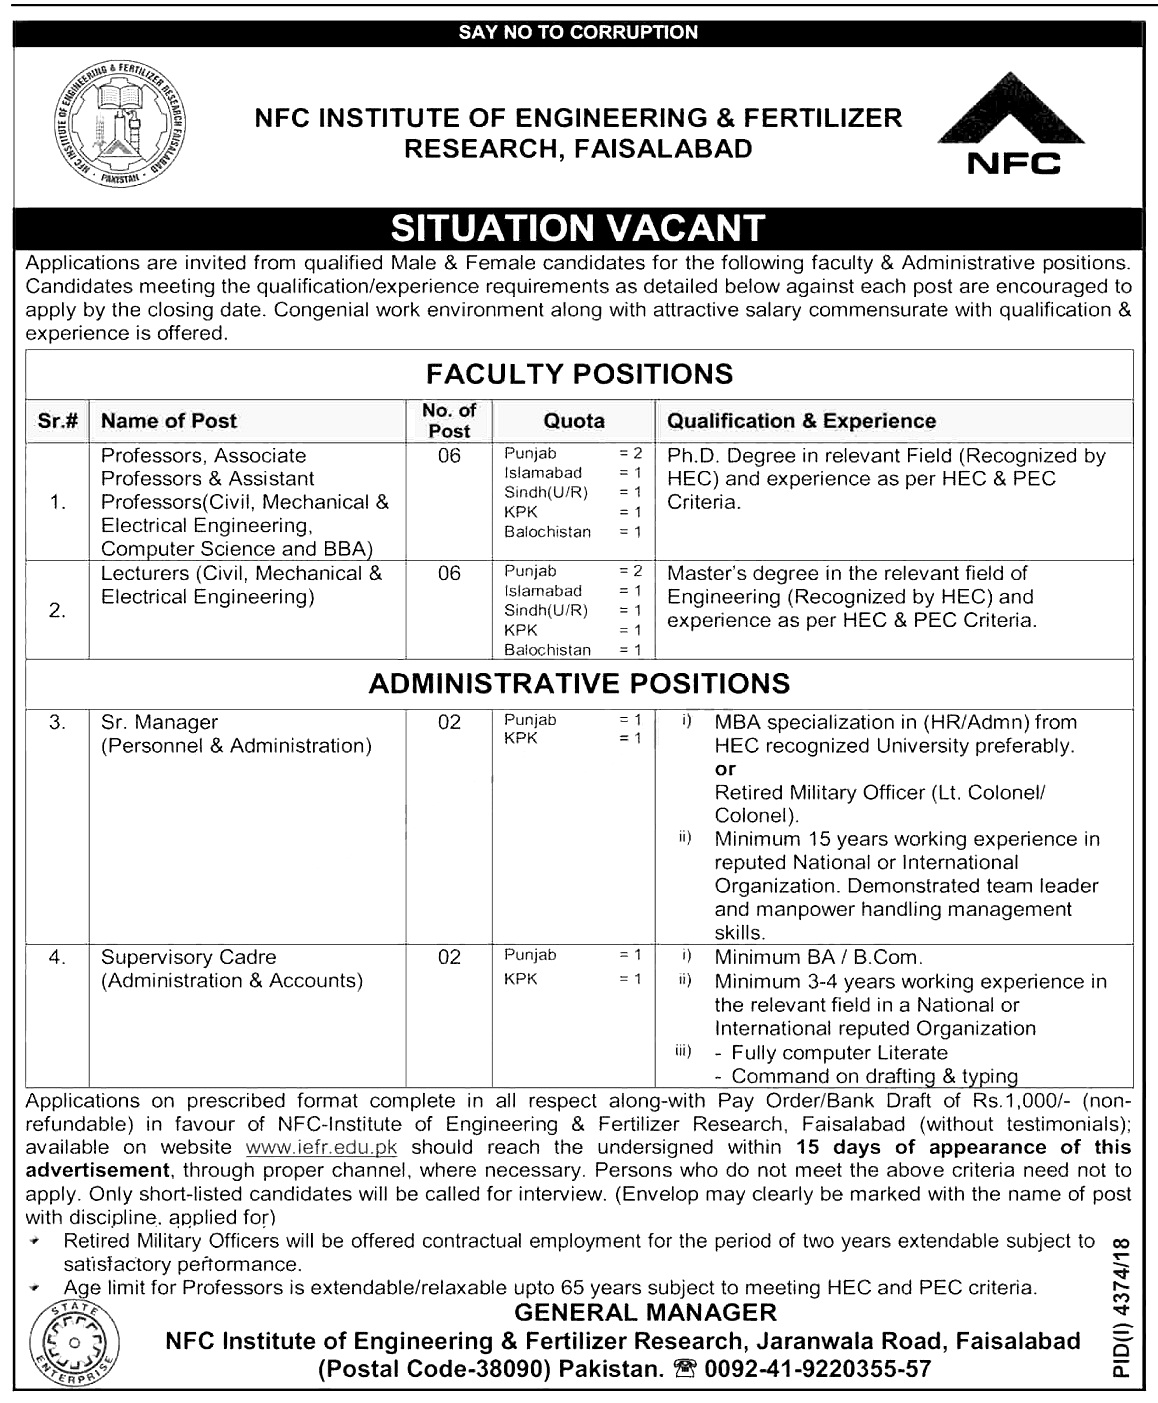 NFC-Insute-of-Engineering-Fertilizer-Research-Faisalabad-Jobs-2019 Job Application Form Civil Engineers on new school, us lottery, for namwater, divine word university, naba scholarship, for miss glamorous, jee exam, junior engineer job, flomaton police, for p1 teachers, nigeria govt diploma online,